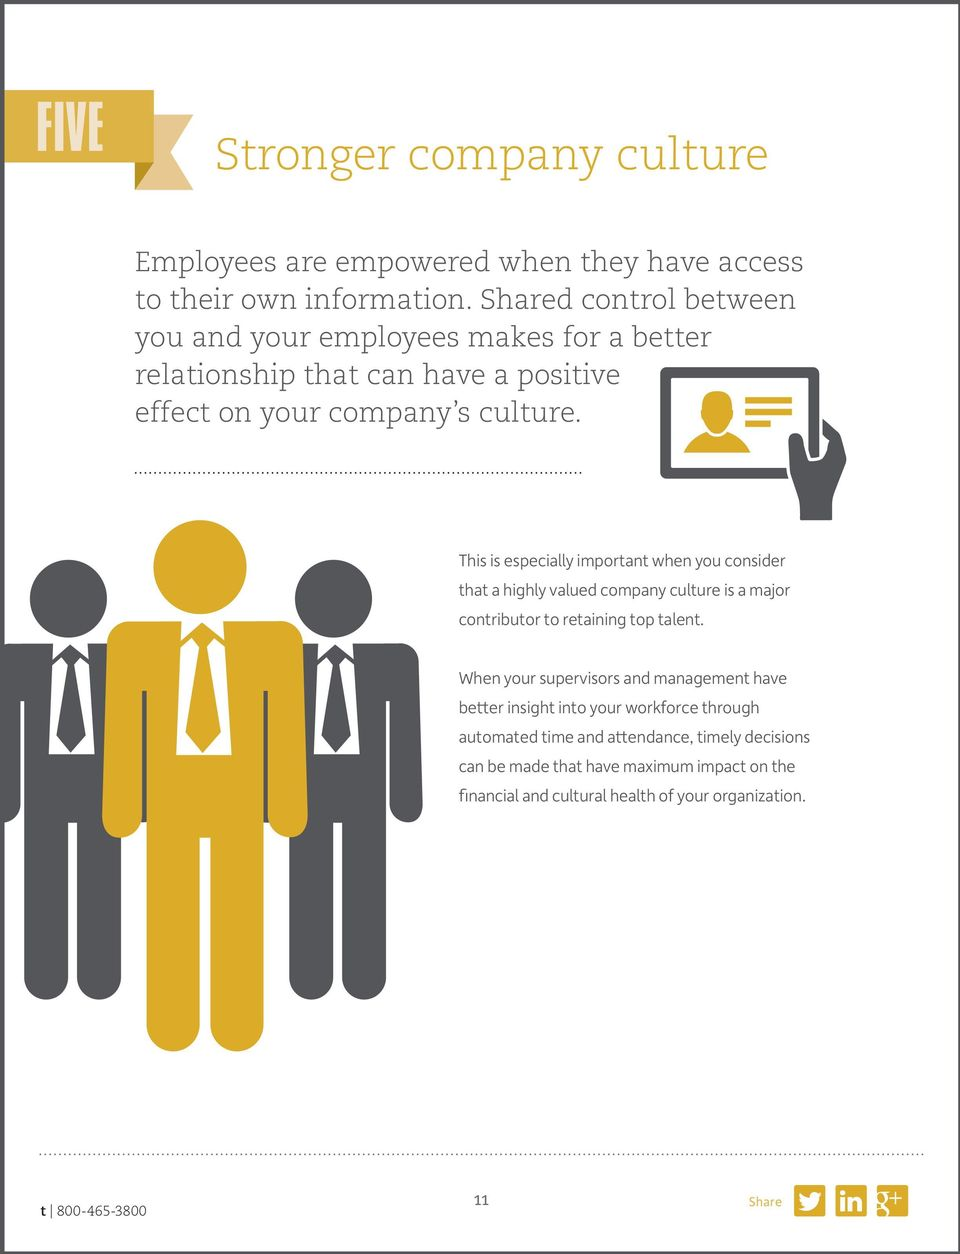 This is especially important when you consider that a highly valued company culture is a major contributor to retaining top talent.